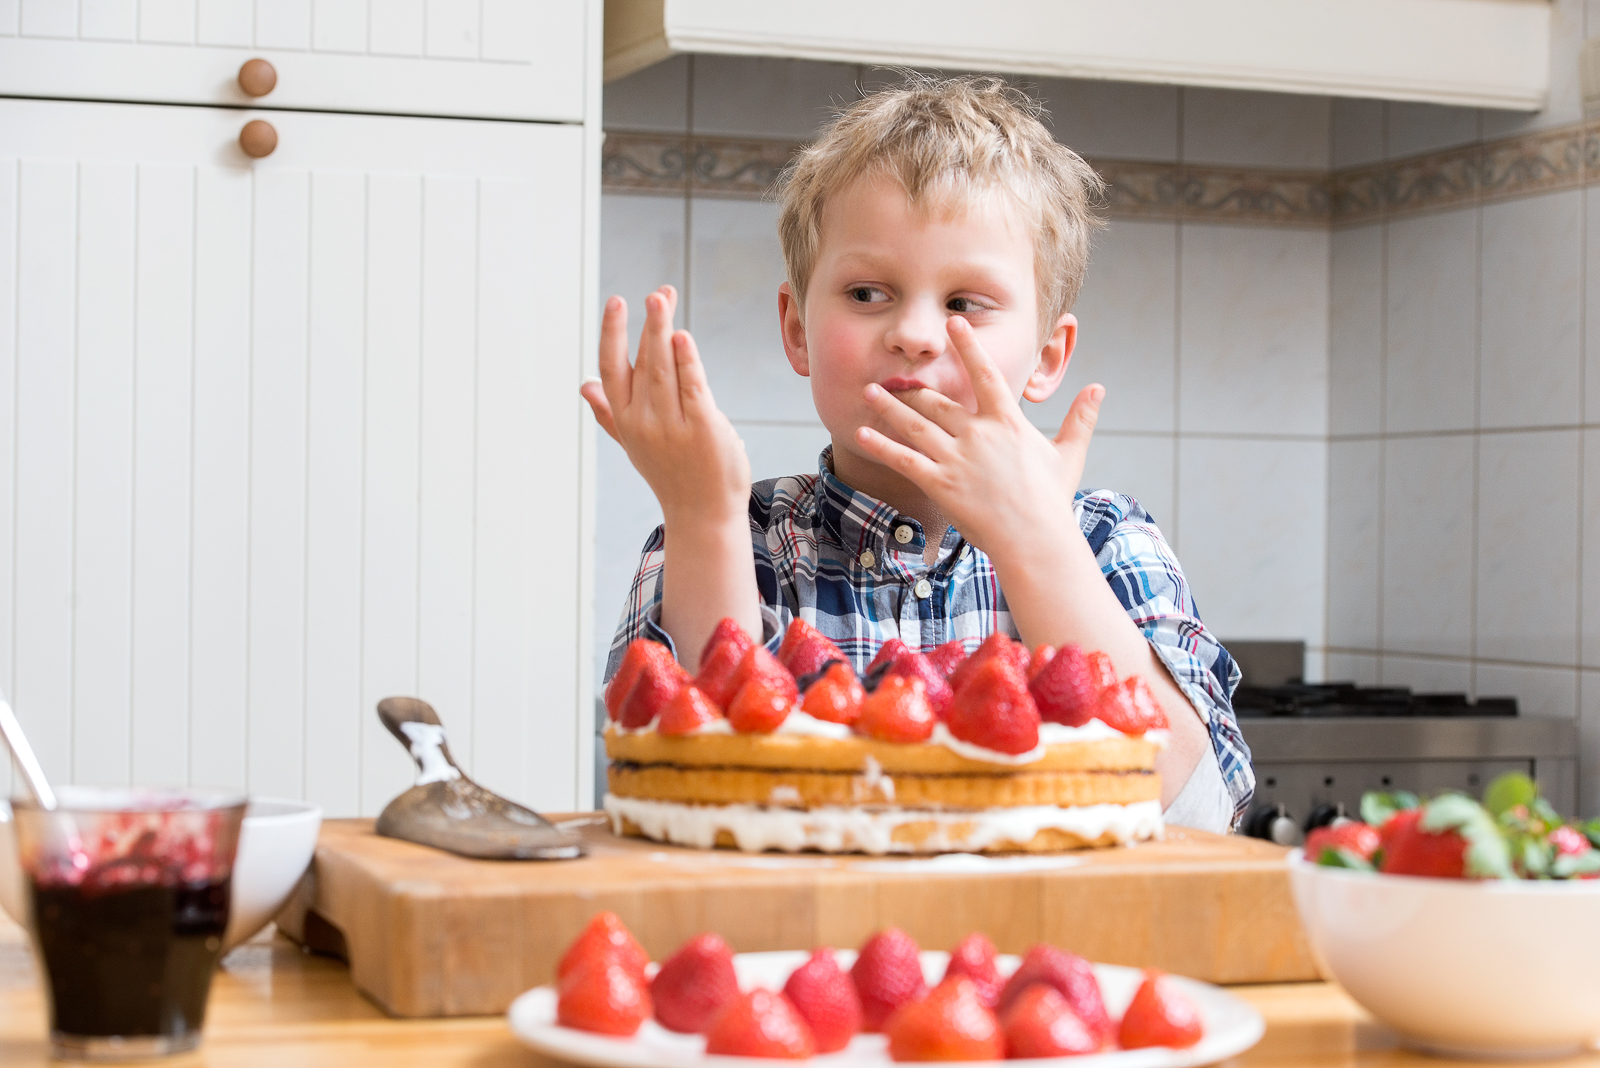 Cute boy licking his fingers with batter, behind a kitchen counter, in behind several strawberry layered cakes and pies